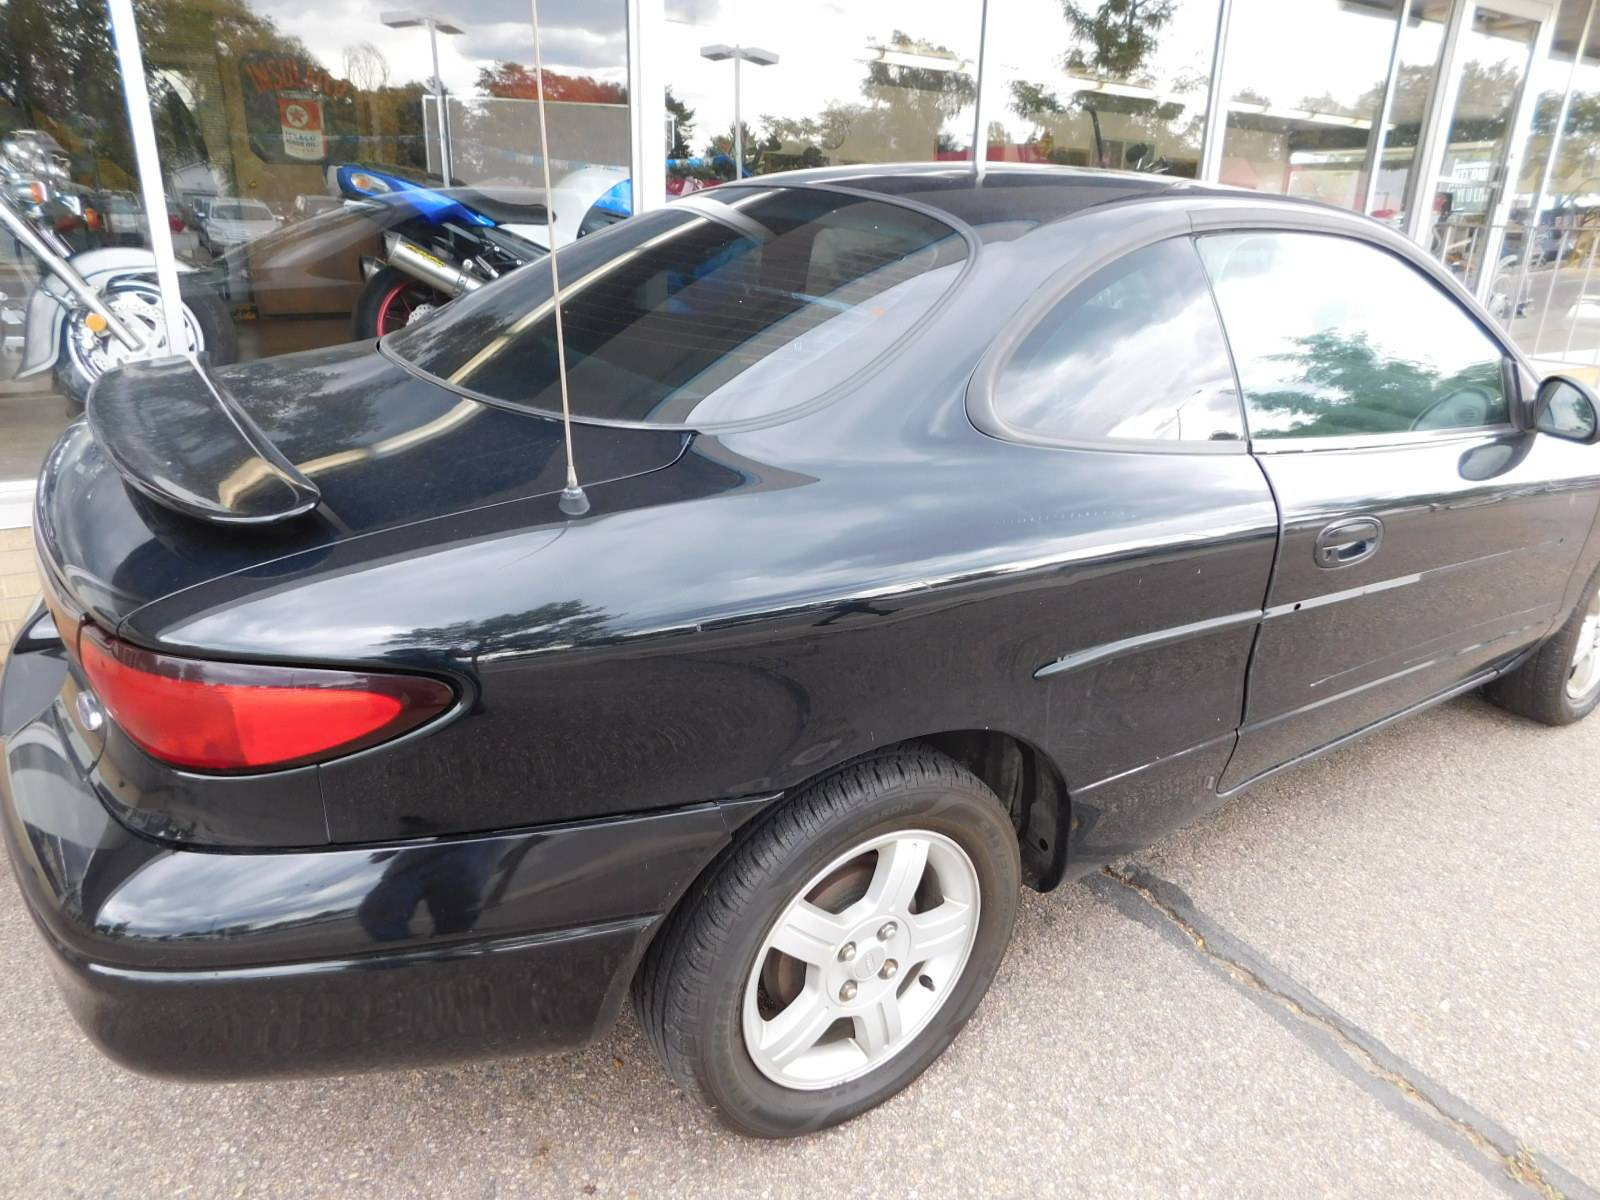 2003 Ford ZX2 Escort in Loveland, Colorado